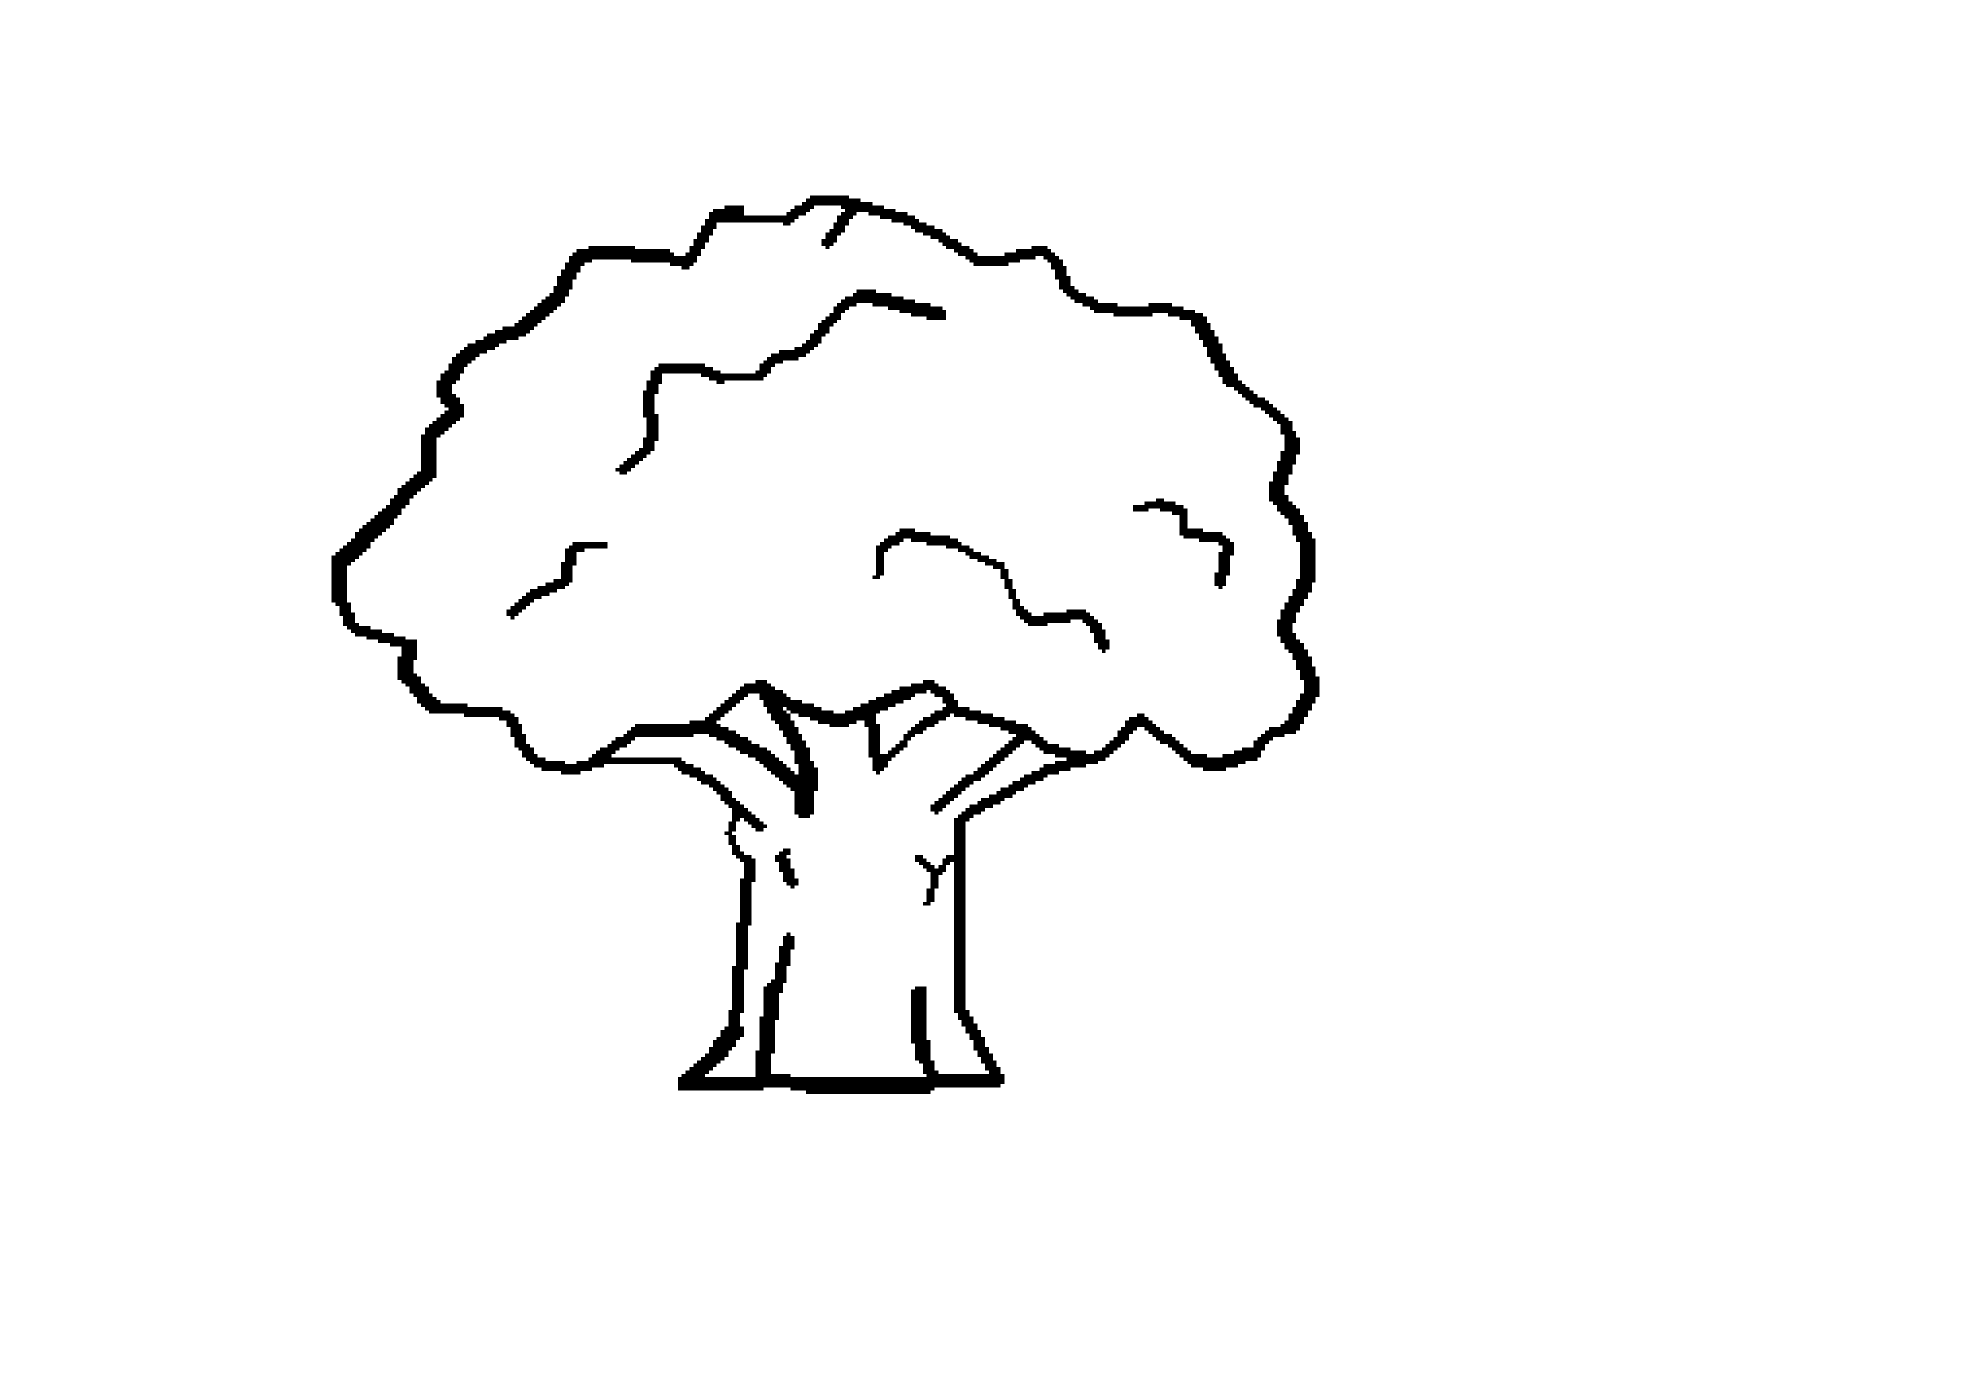 tree clipart black and white - Christmas Tree Clipart Black And White